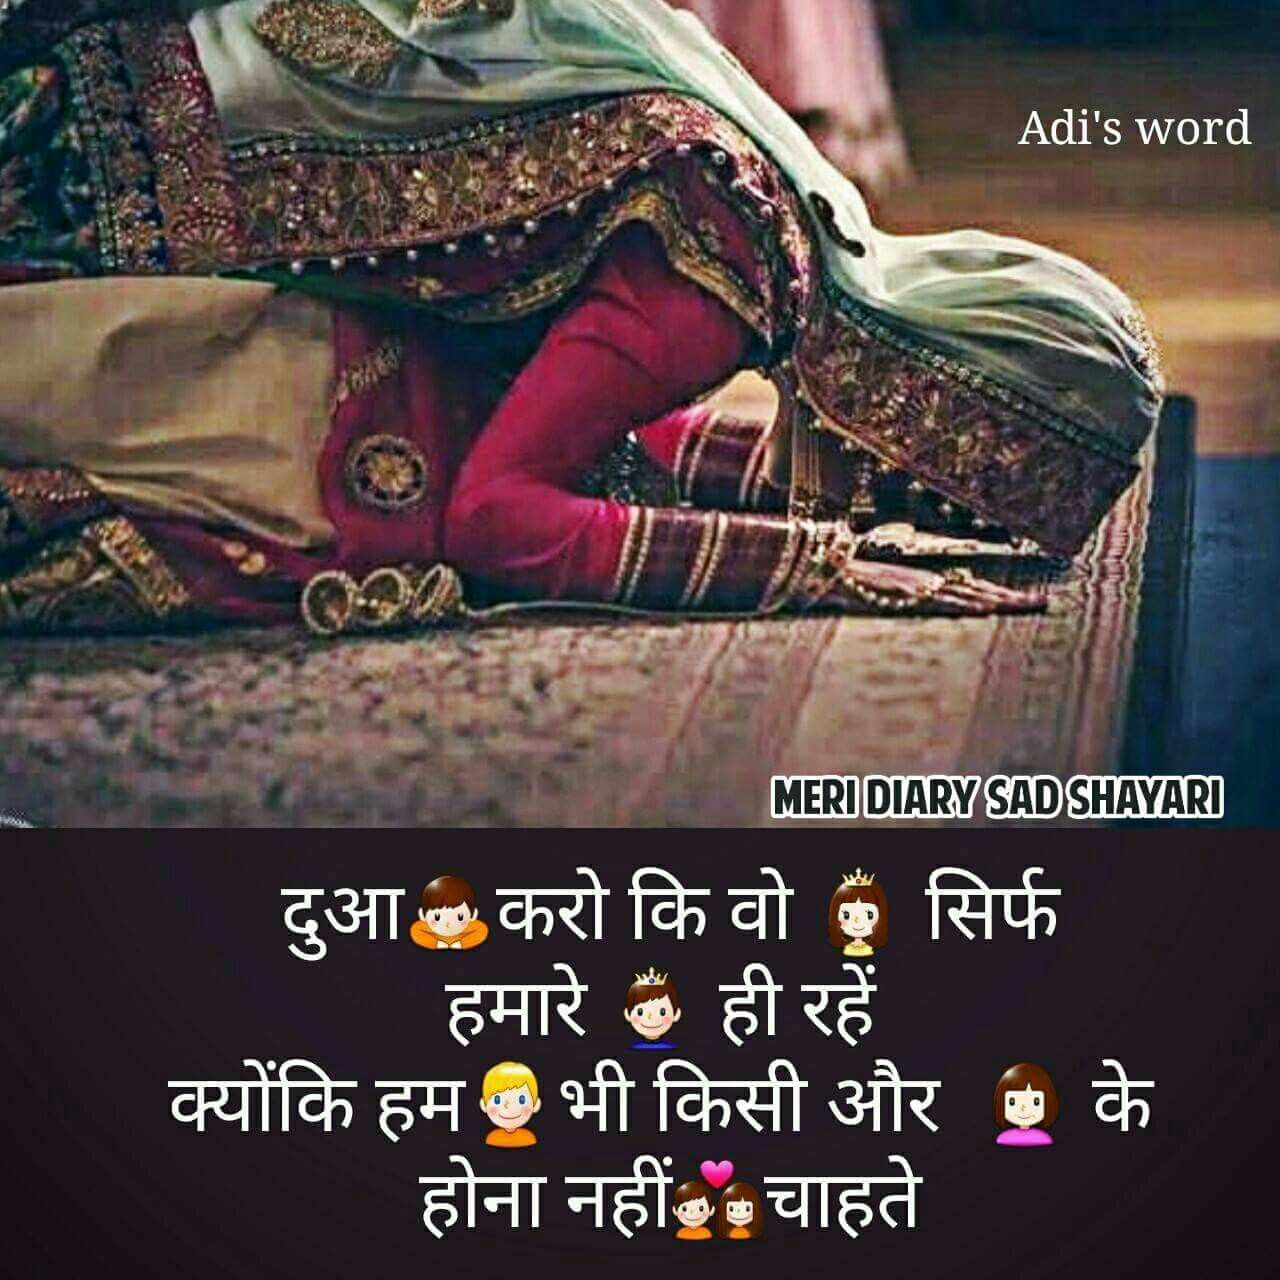 wedding anniversary wishes shayari in hindi%0A Wallpapers  Sad  Feelings  Beautiful Lines  Diaries  Attitude  Wall Papers   Journals  Tapestries